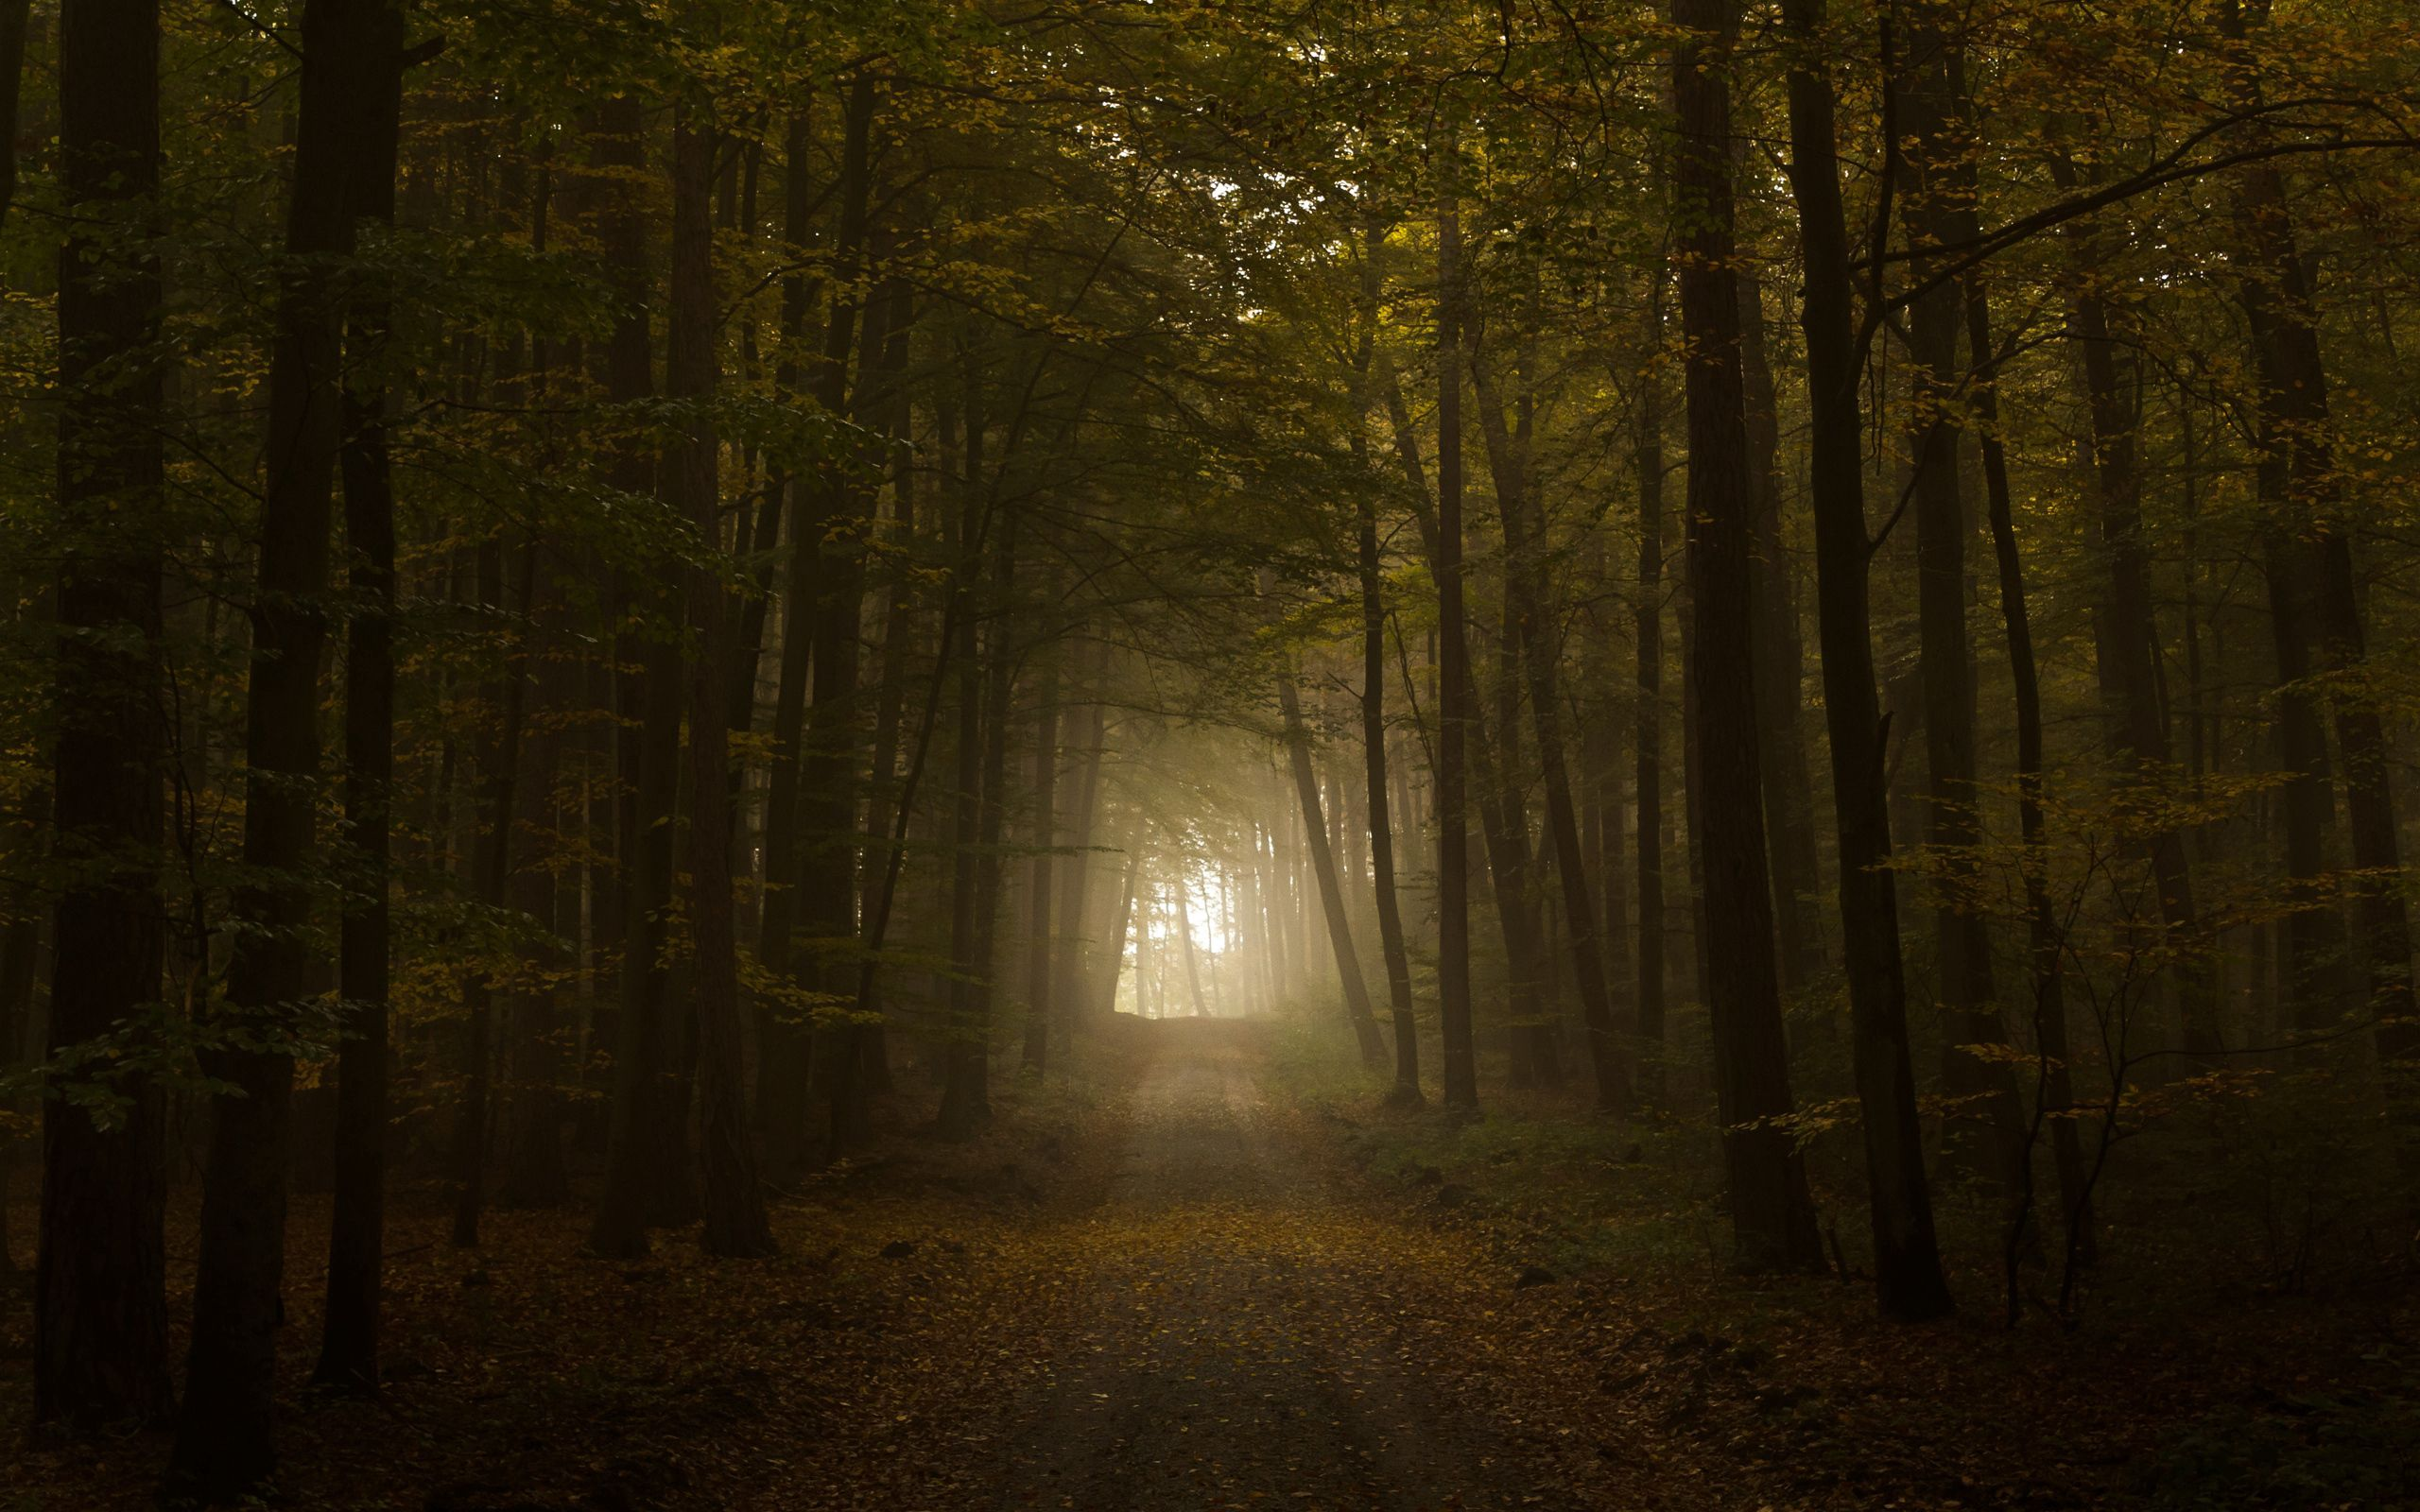 76499 download wallpaper Forest, Nature, Trees, Autumn, Shine, Light, Road, Fog screensavers and pictures for free